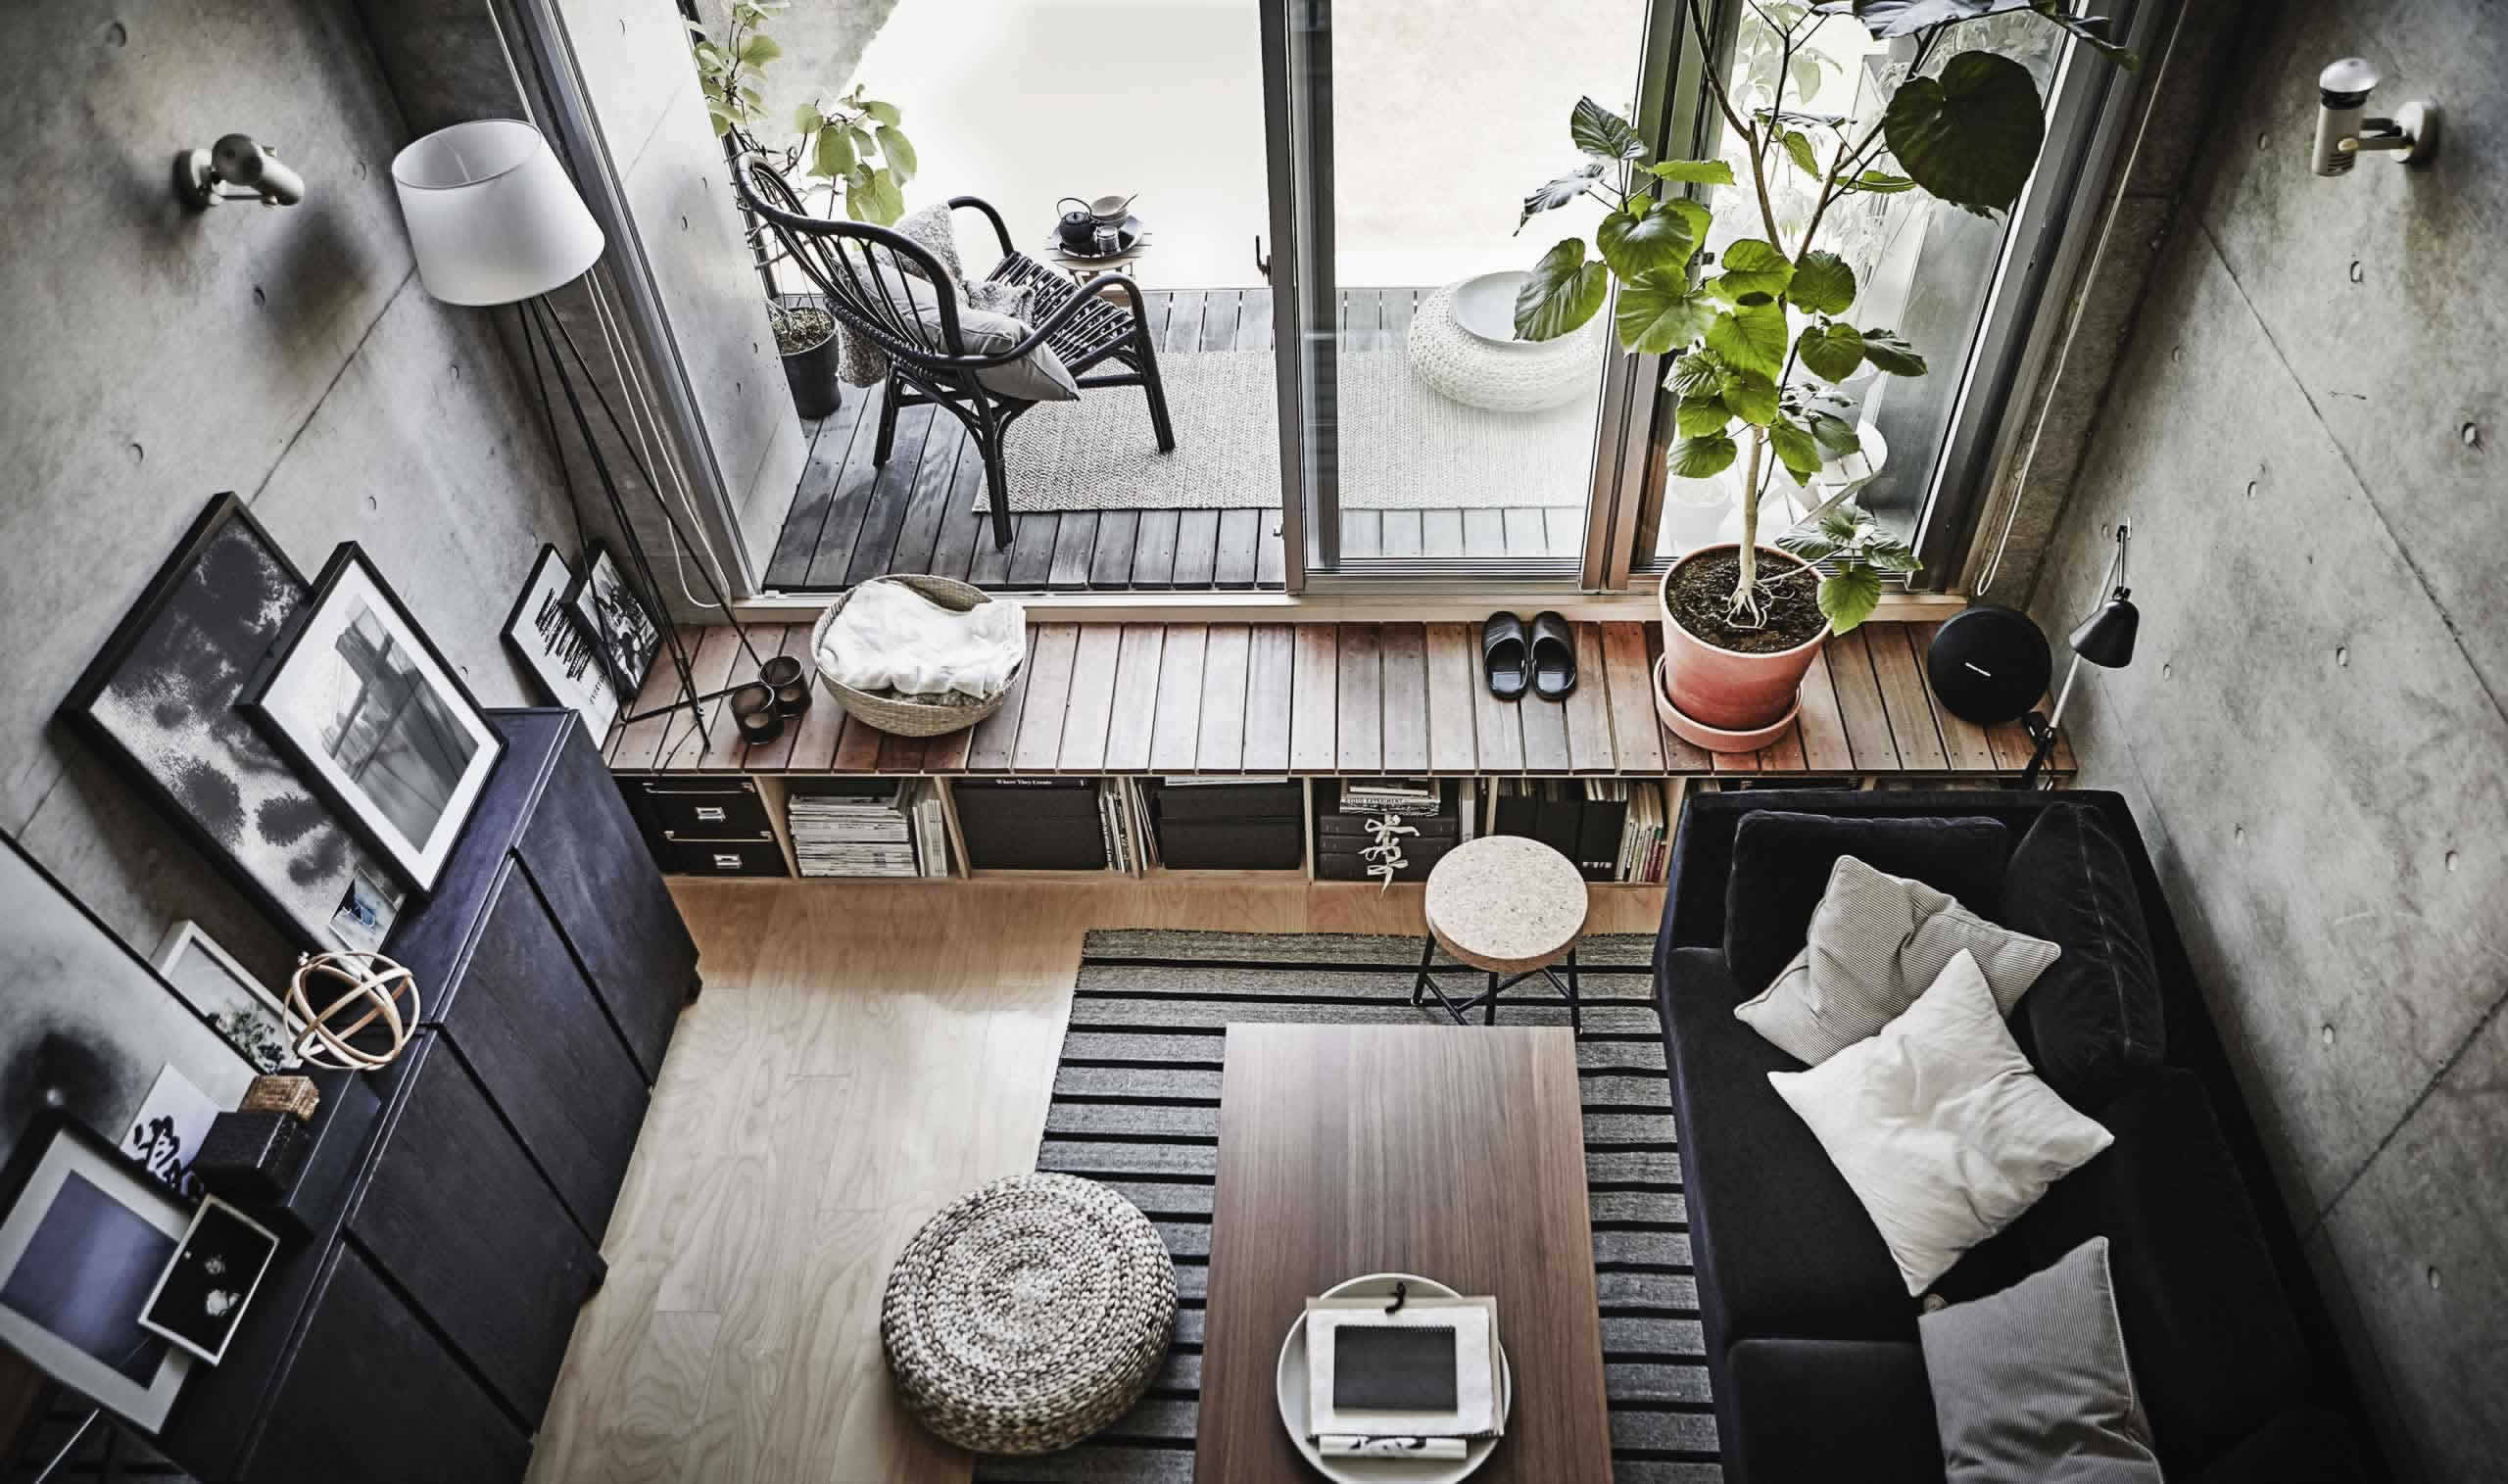 IKEA Ideas - A cleverly planned small urban space